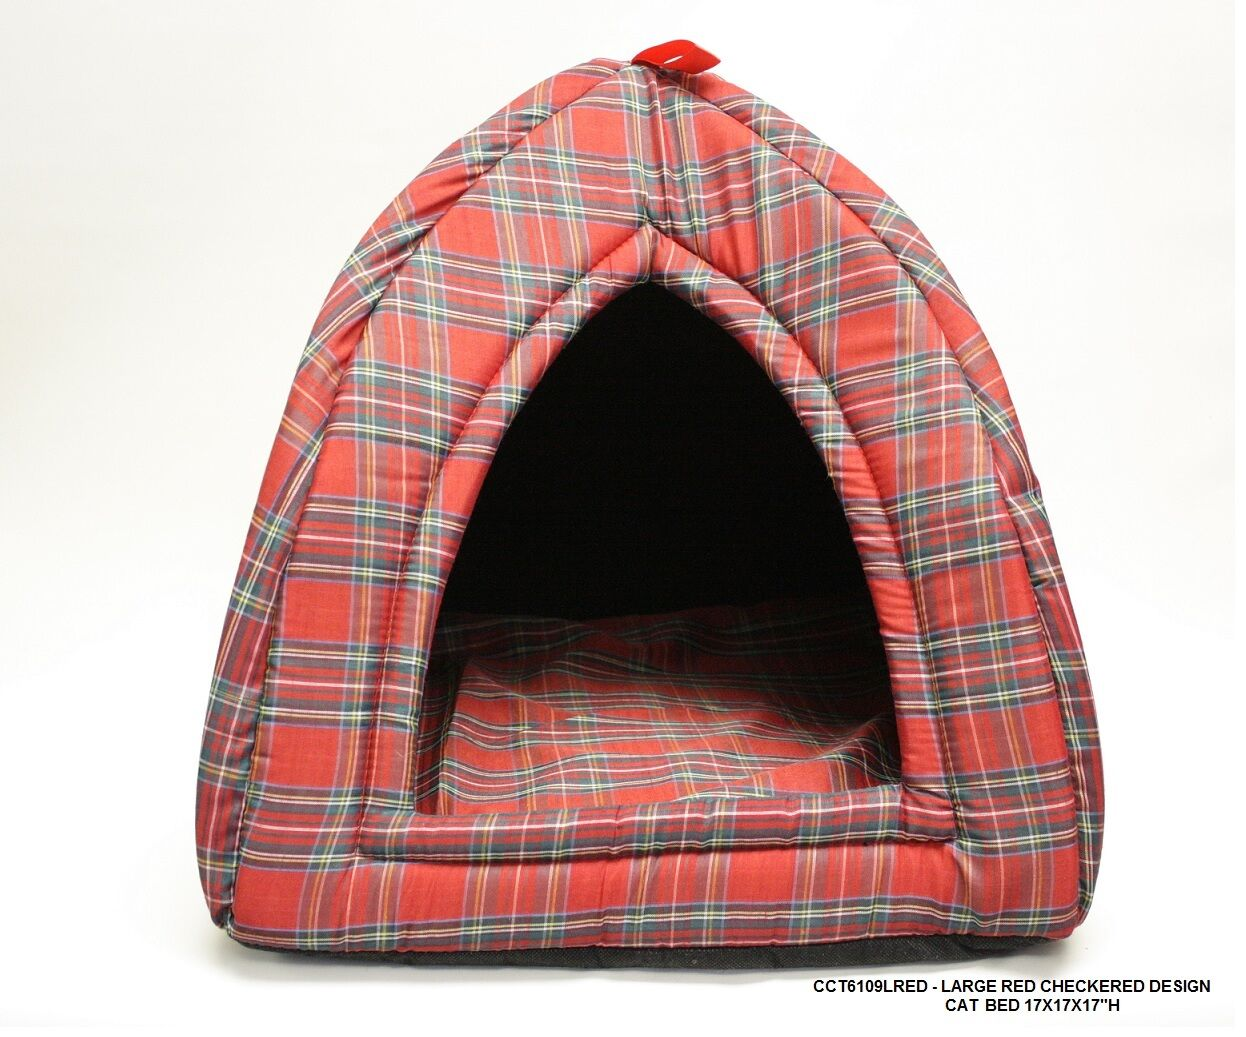 Checkered Cat Bed Size: Large - 17